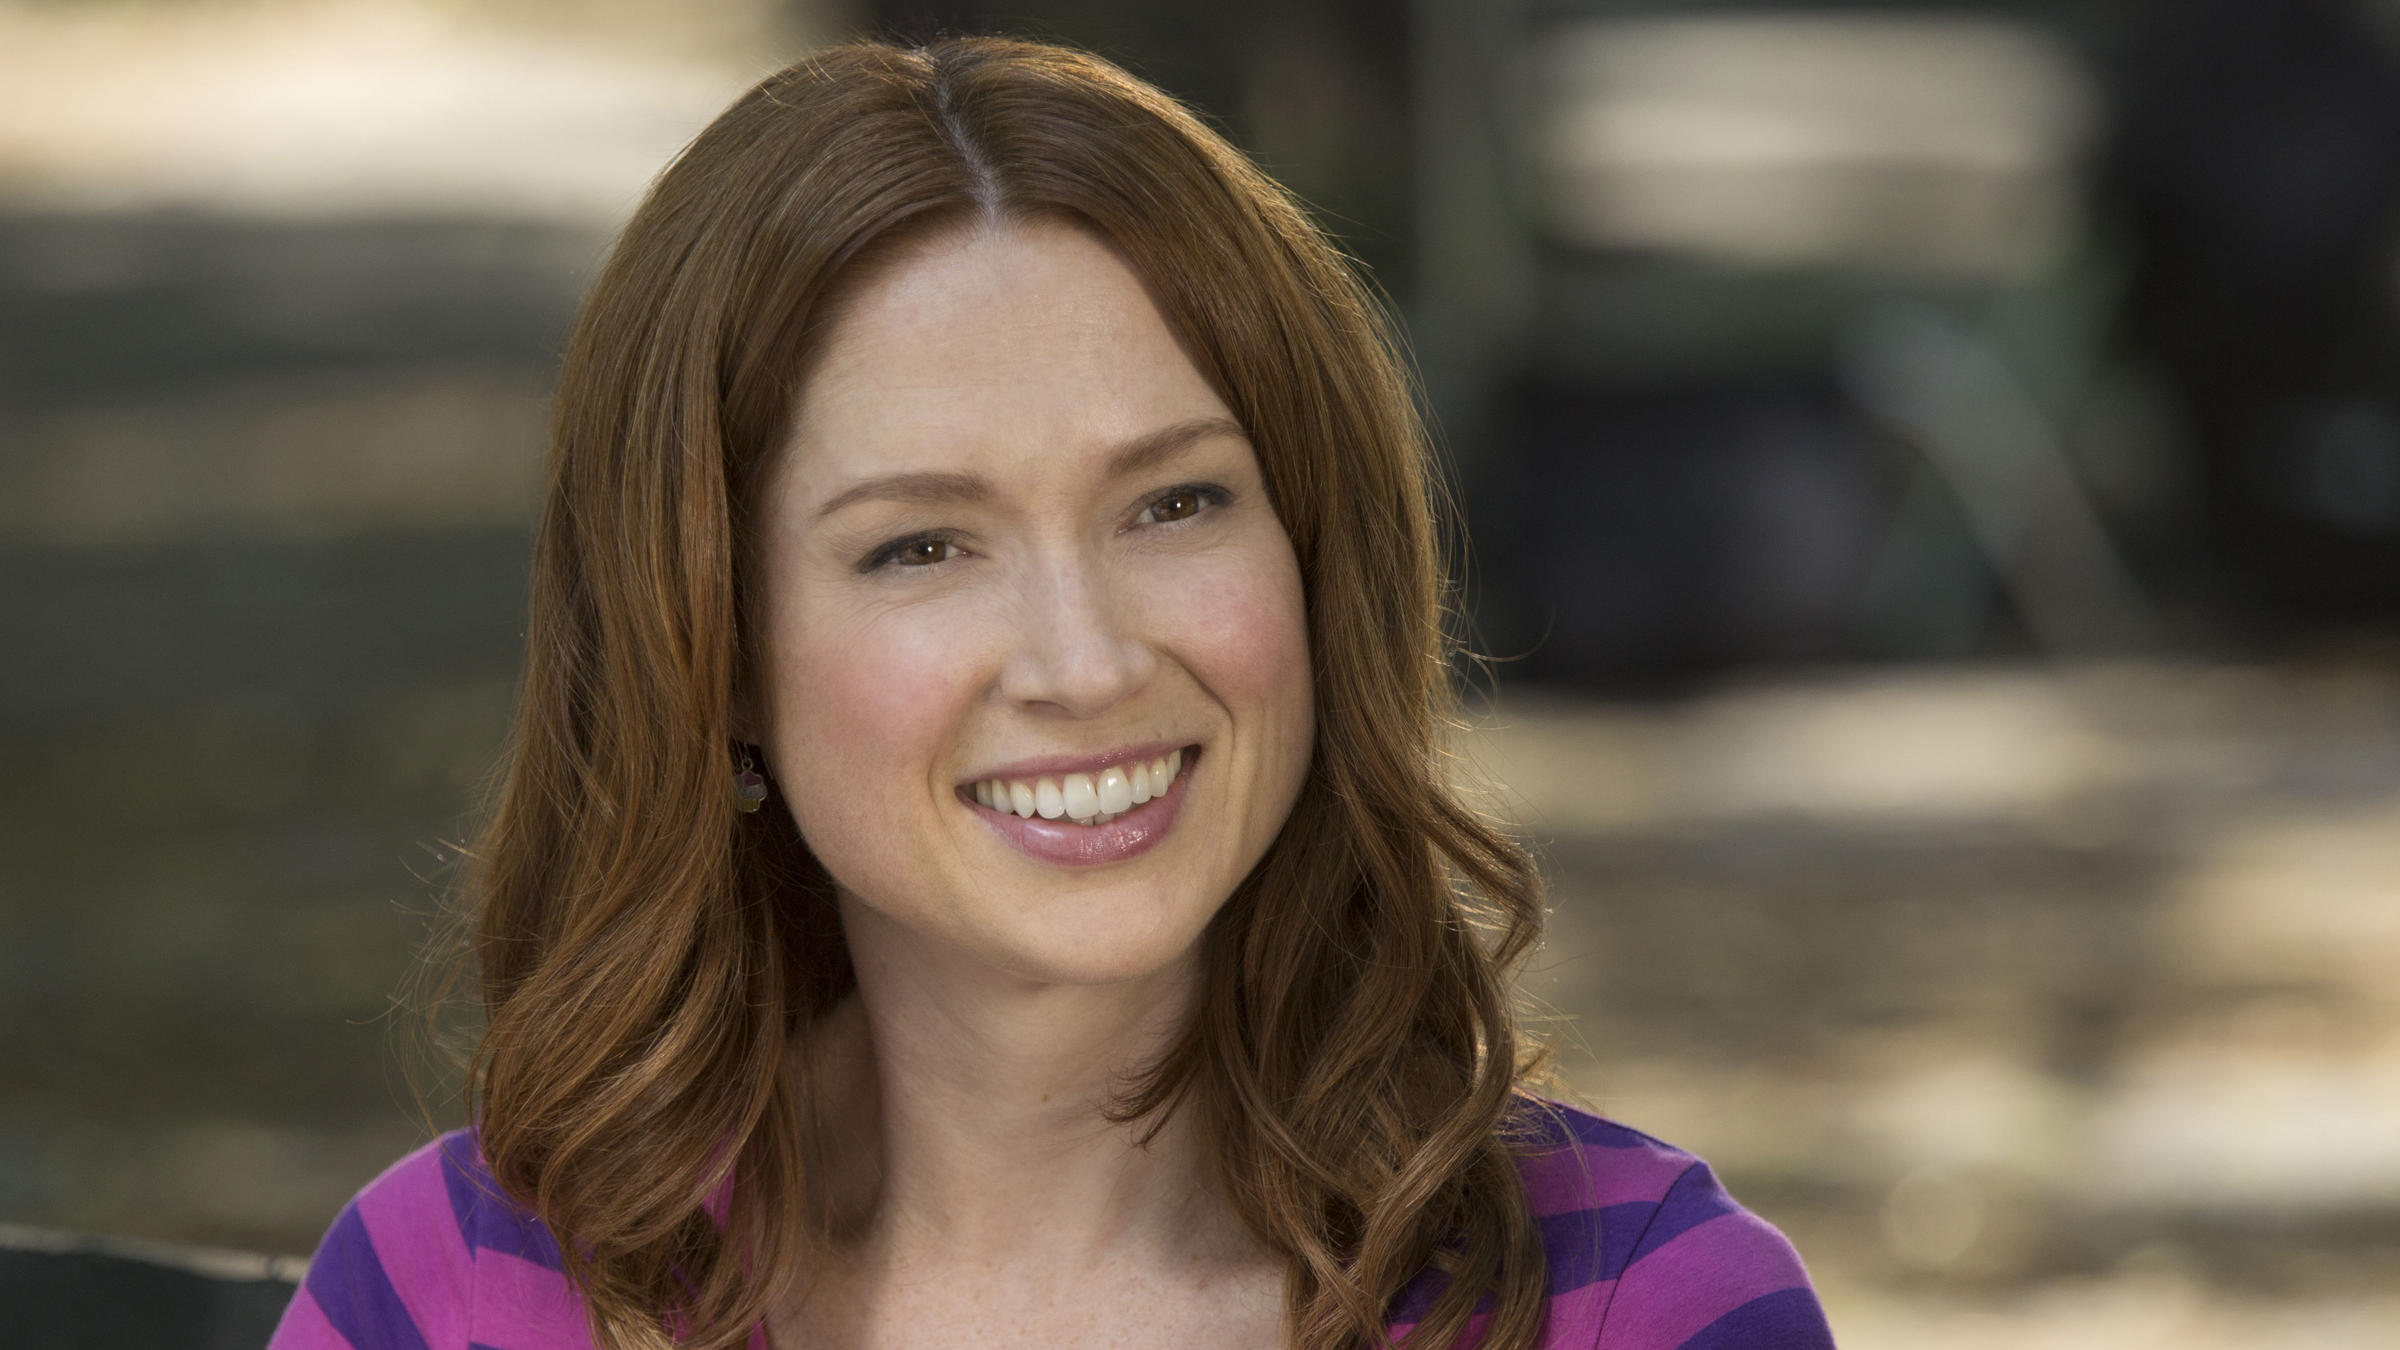 TheFappening Ellie Kemper naked (42 photo), Tits, Cleavage, Boobs, bra 2020